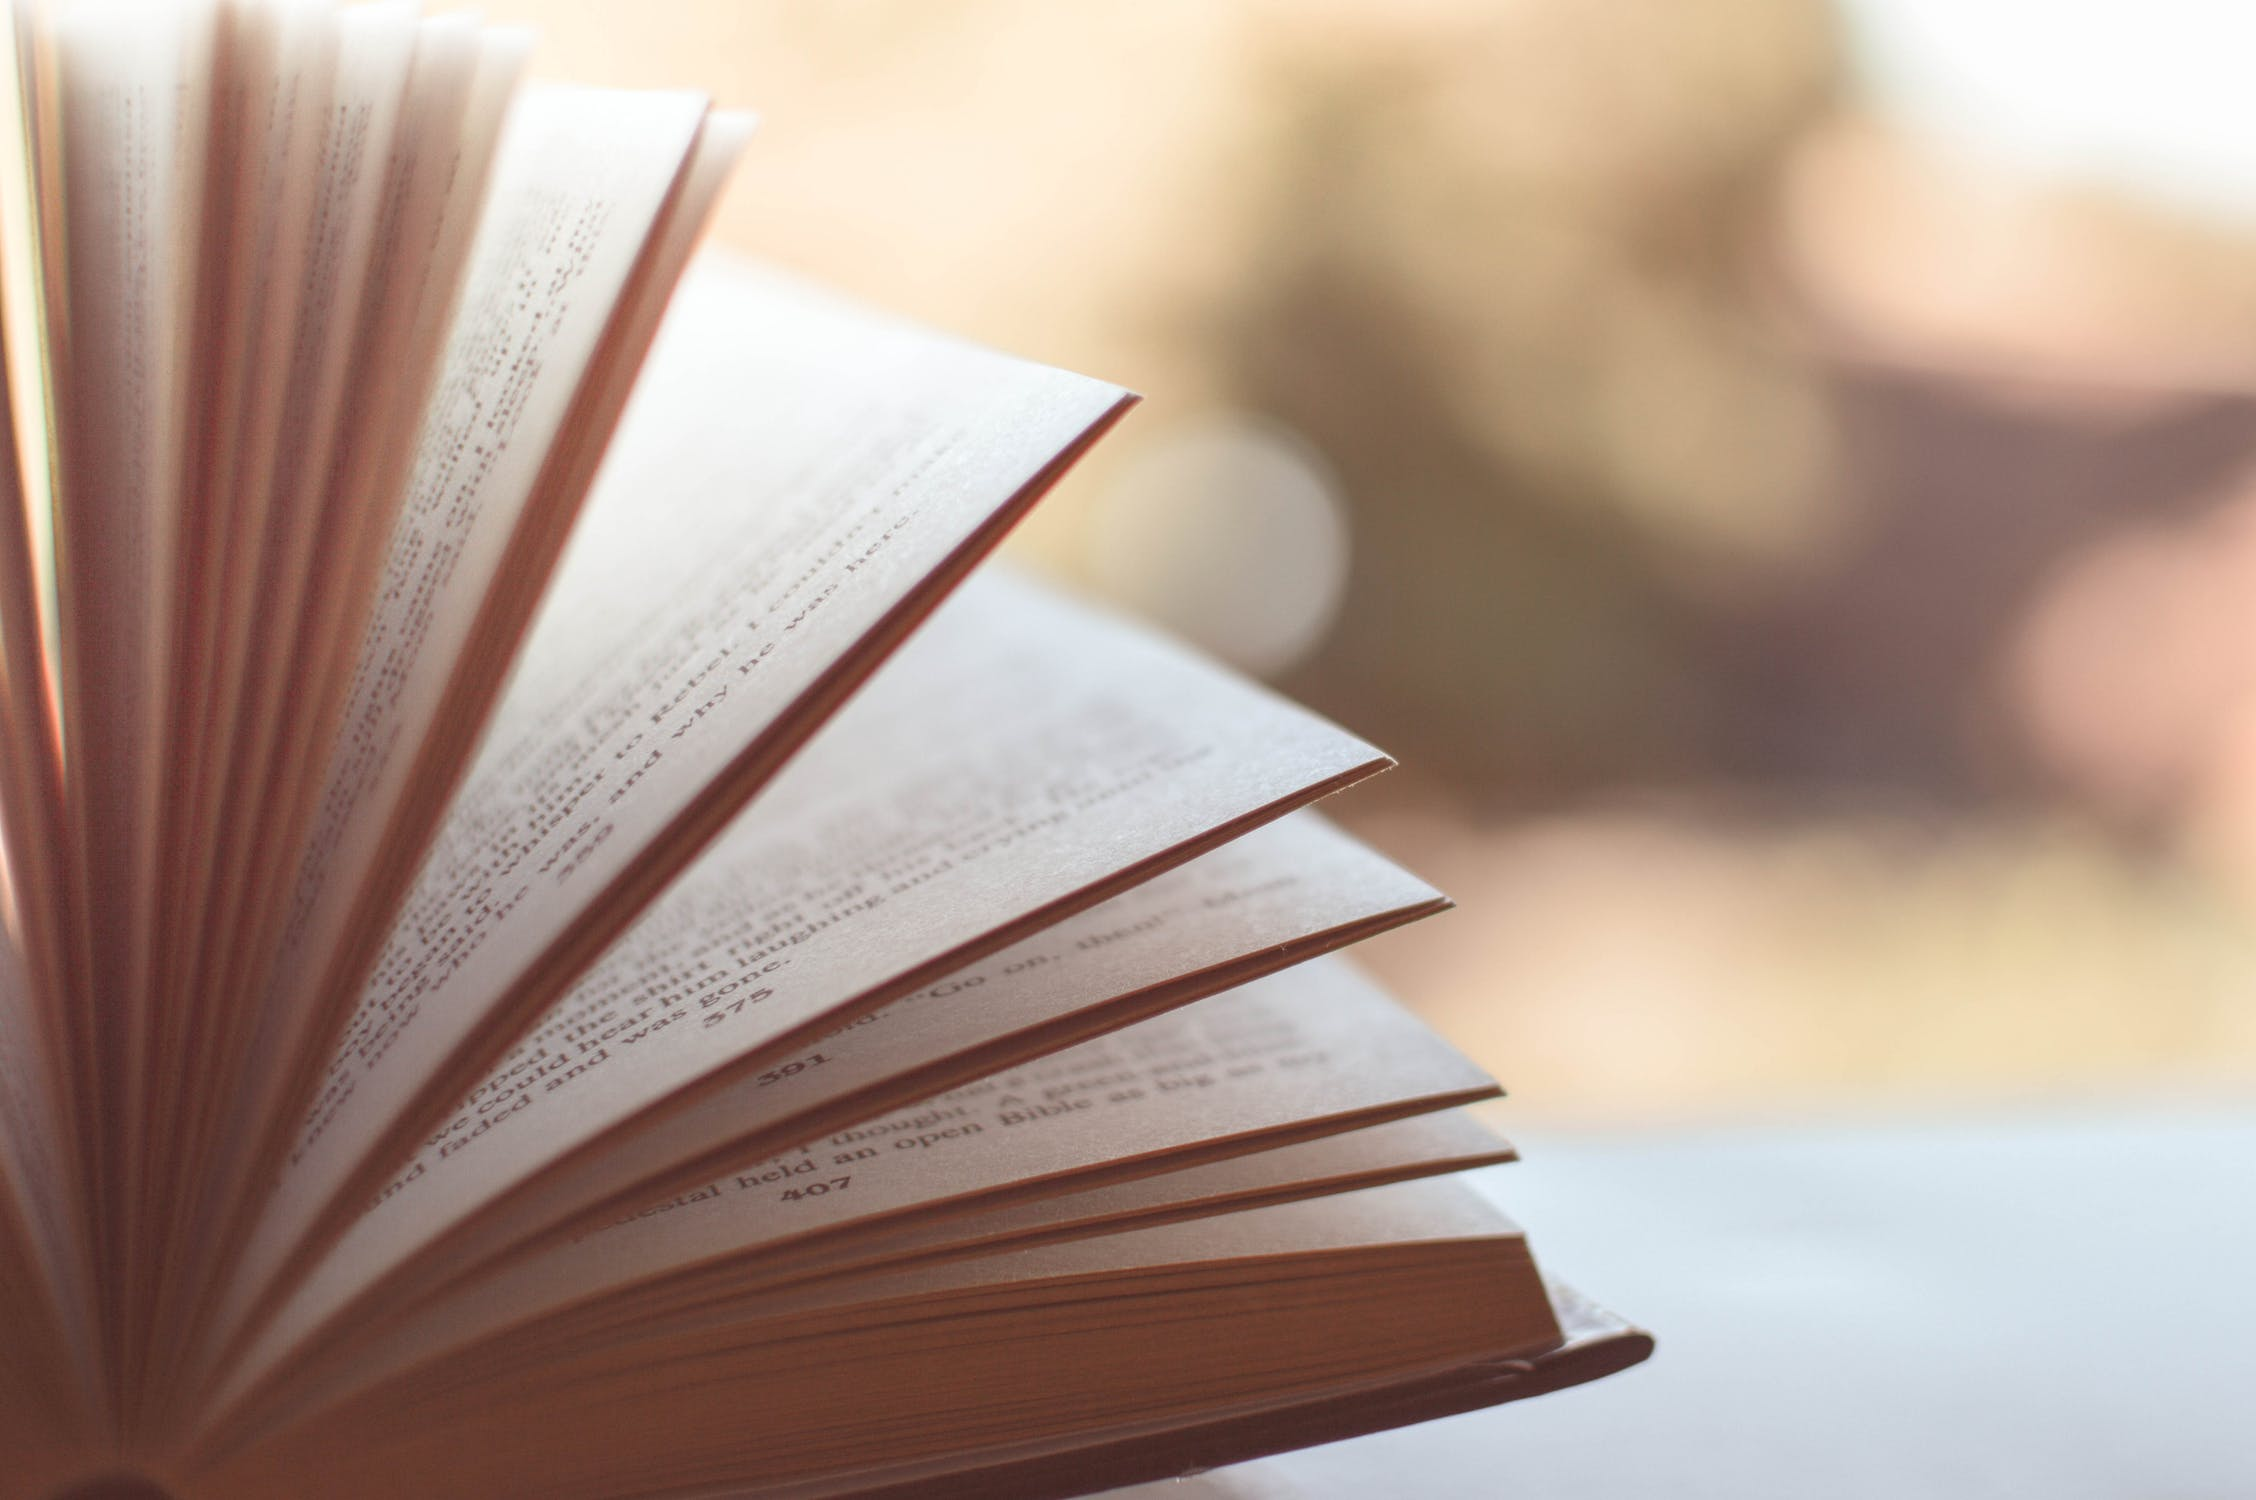 5 Steps To Take To Become Self Published